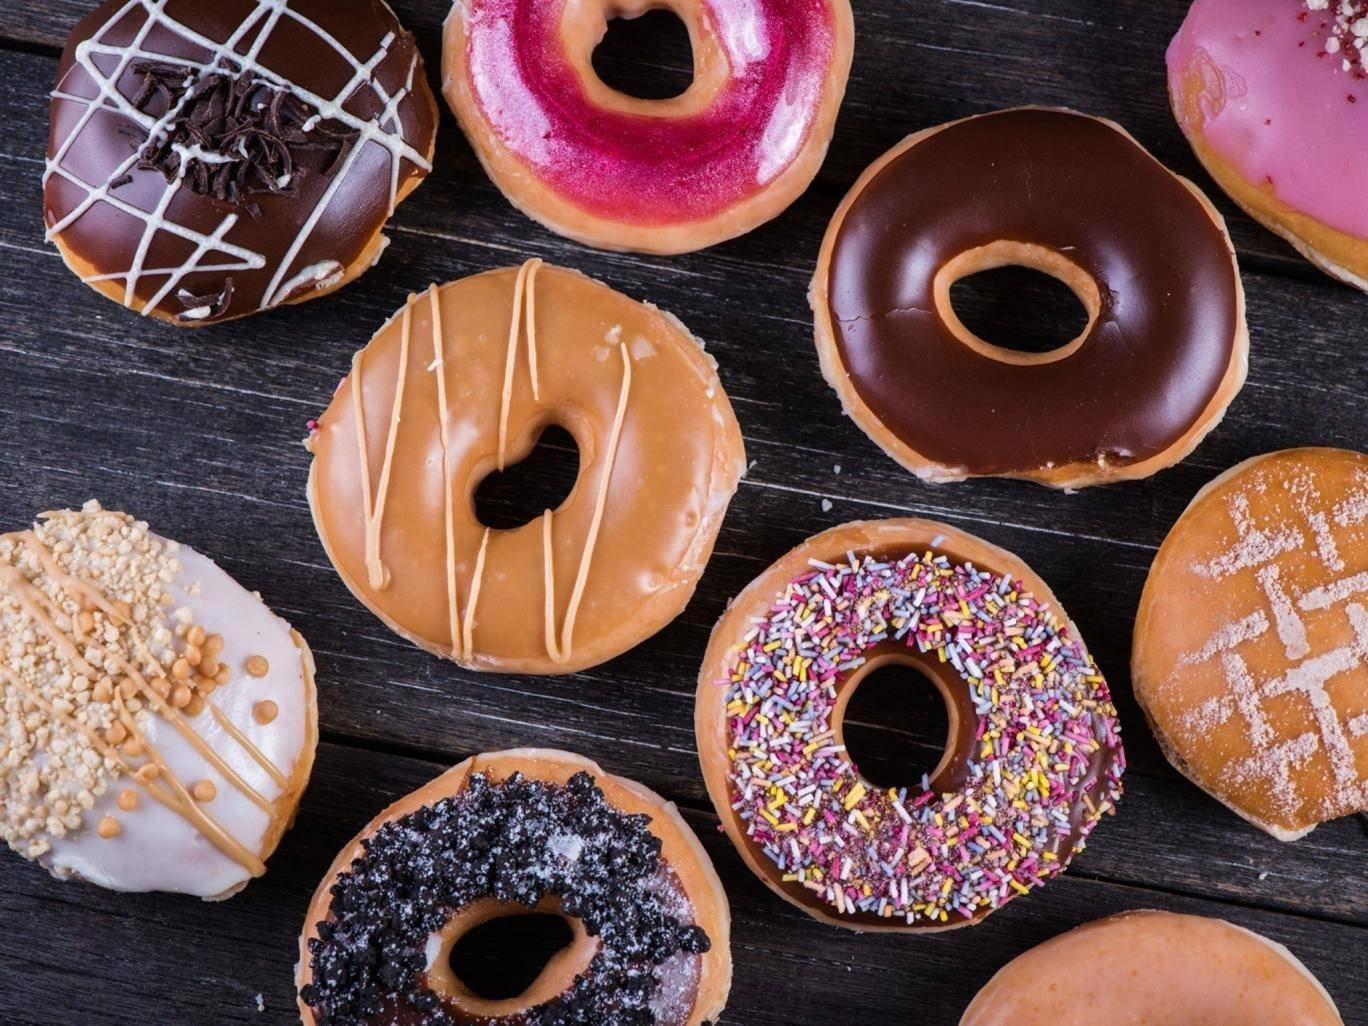 What Happens To Your Body An Hour After Eating Sugar?